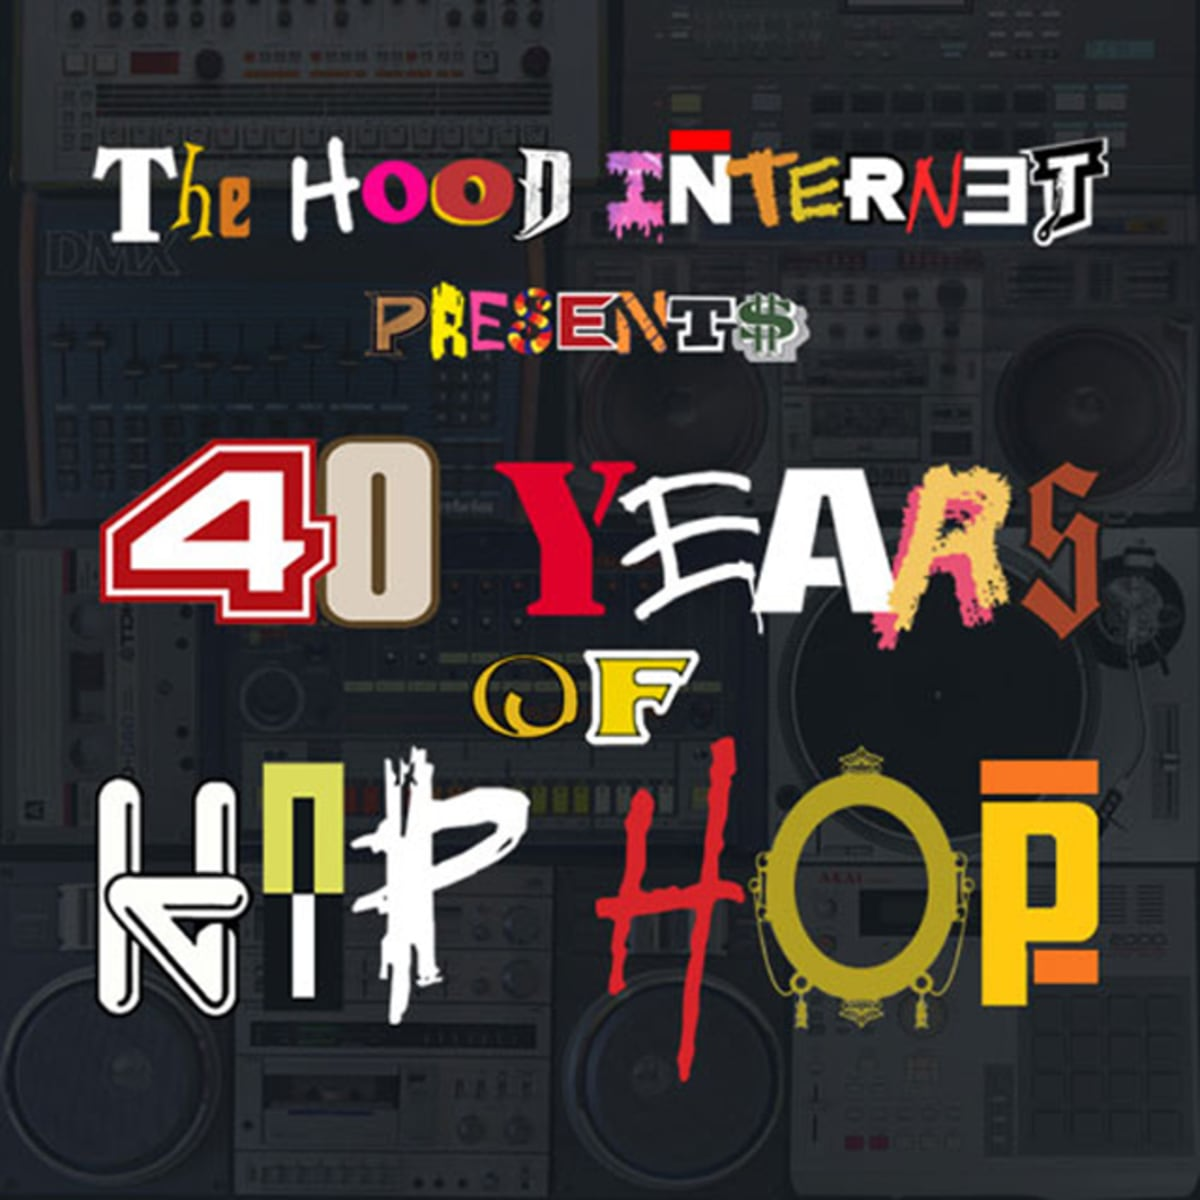 40 Years of Hip Hop Cut Into One Song - Boing Boing